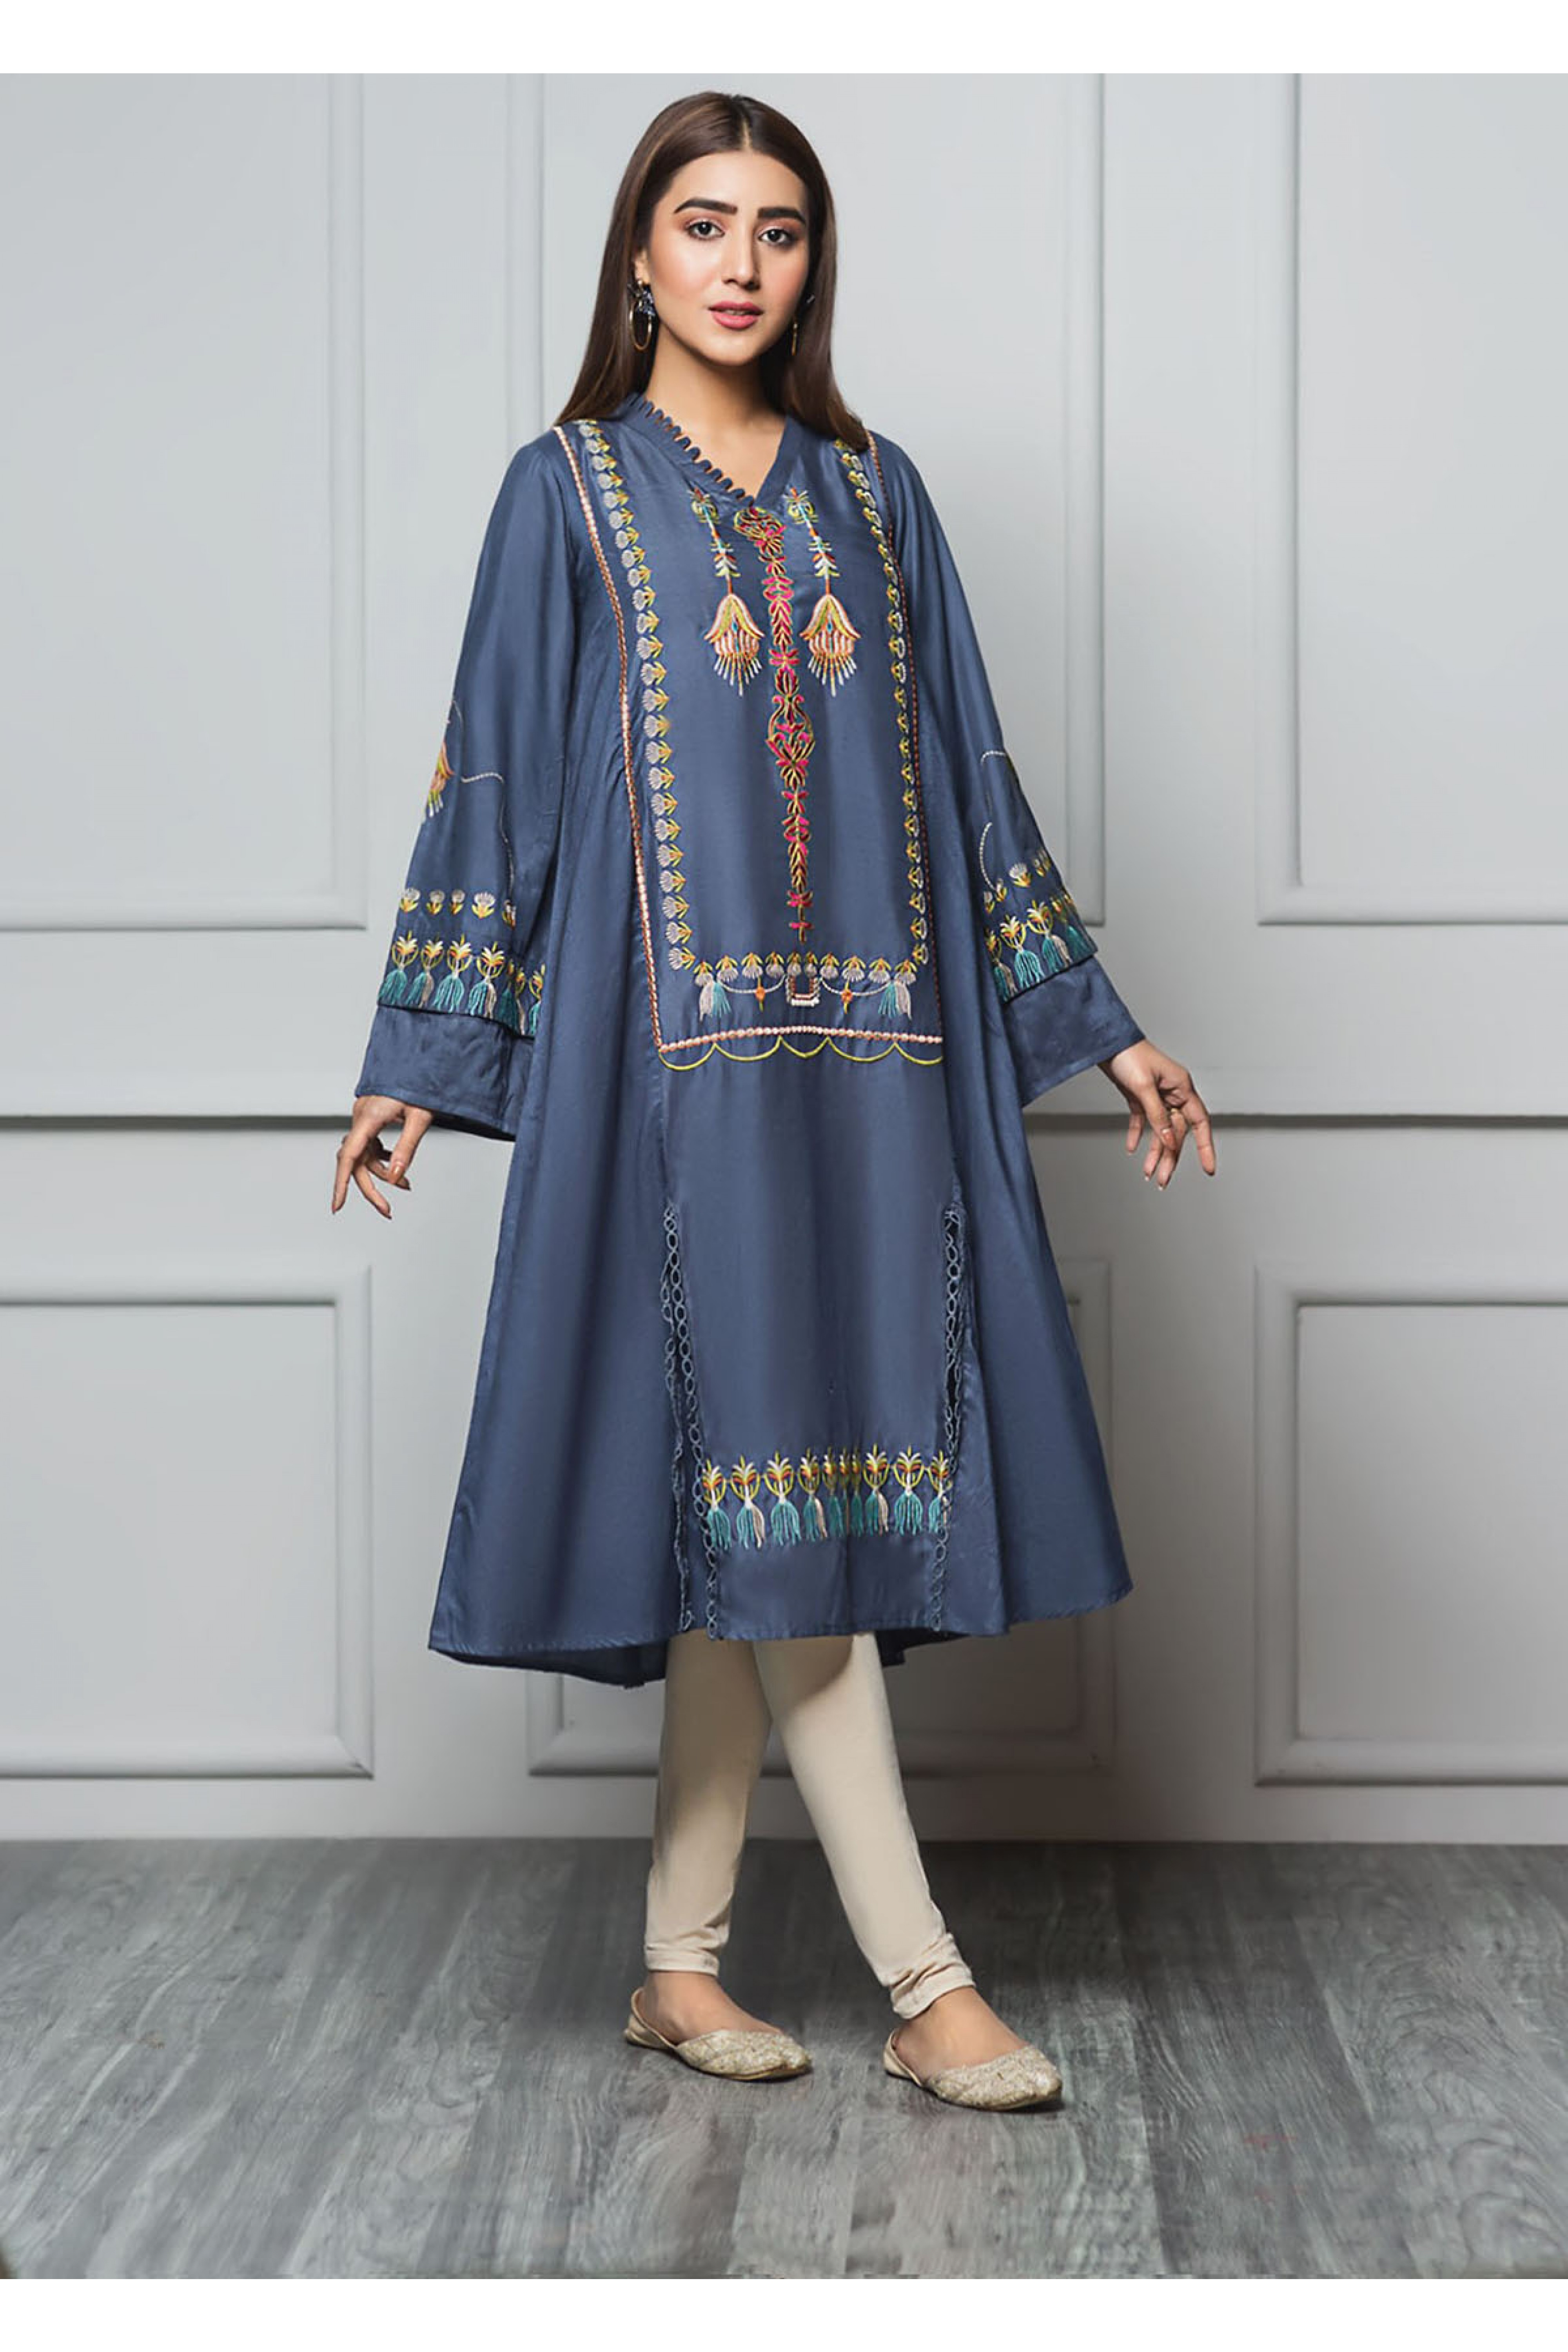 AZURE SKY(Embroidered Frock)